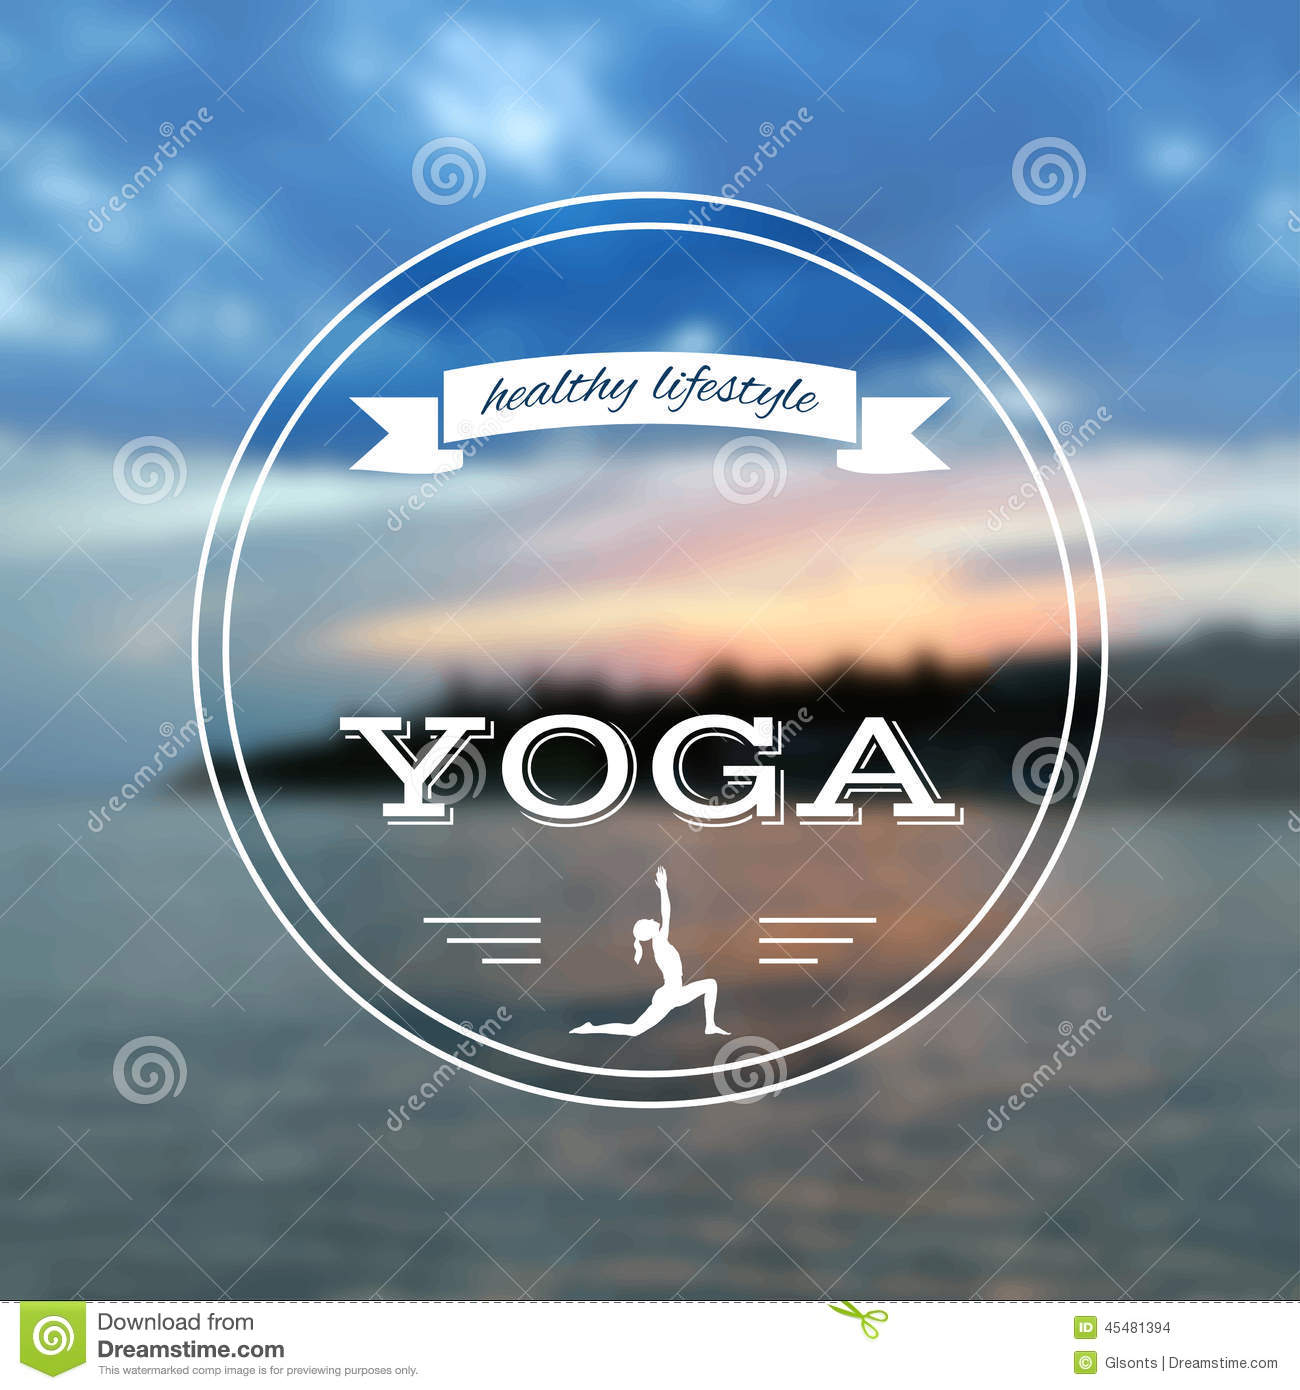 Poster design yoga - Poster For Yoga Class With A Sea View Eps Jpg Stock Vector